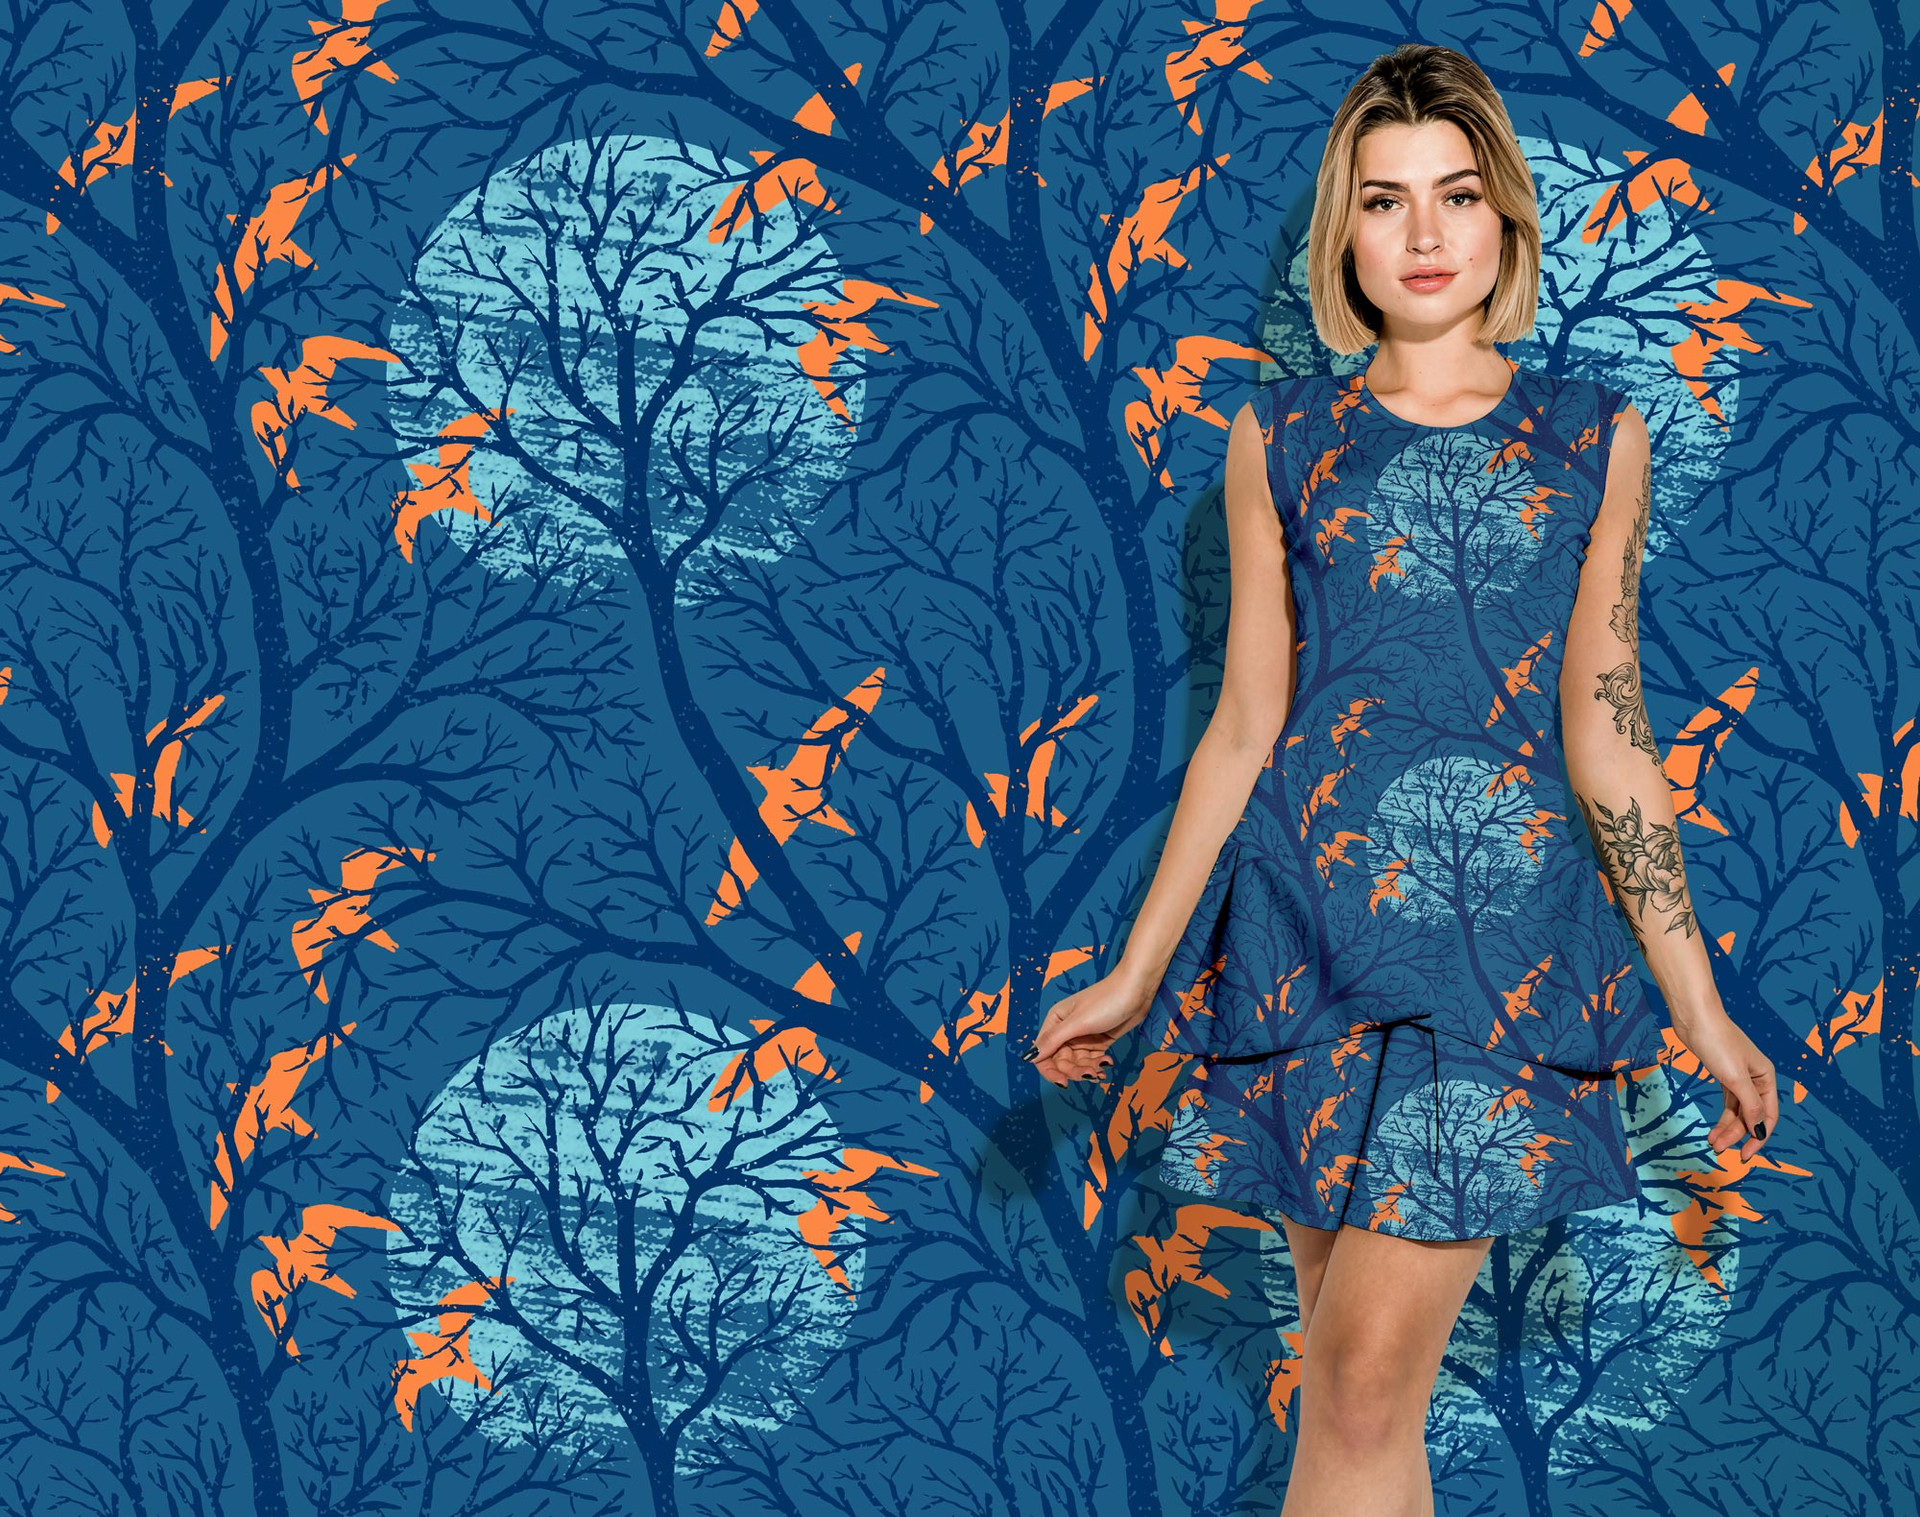 Blue Moon pattern on a dress